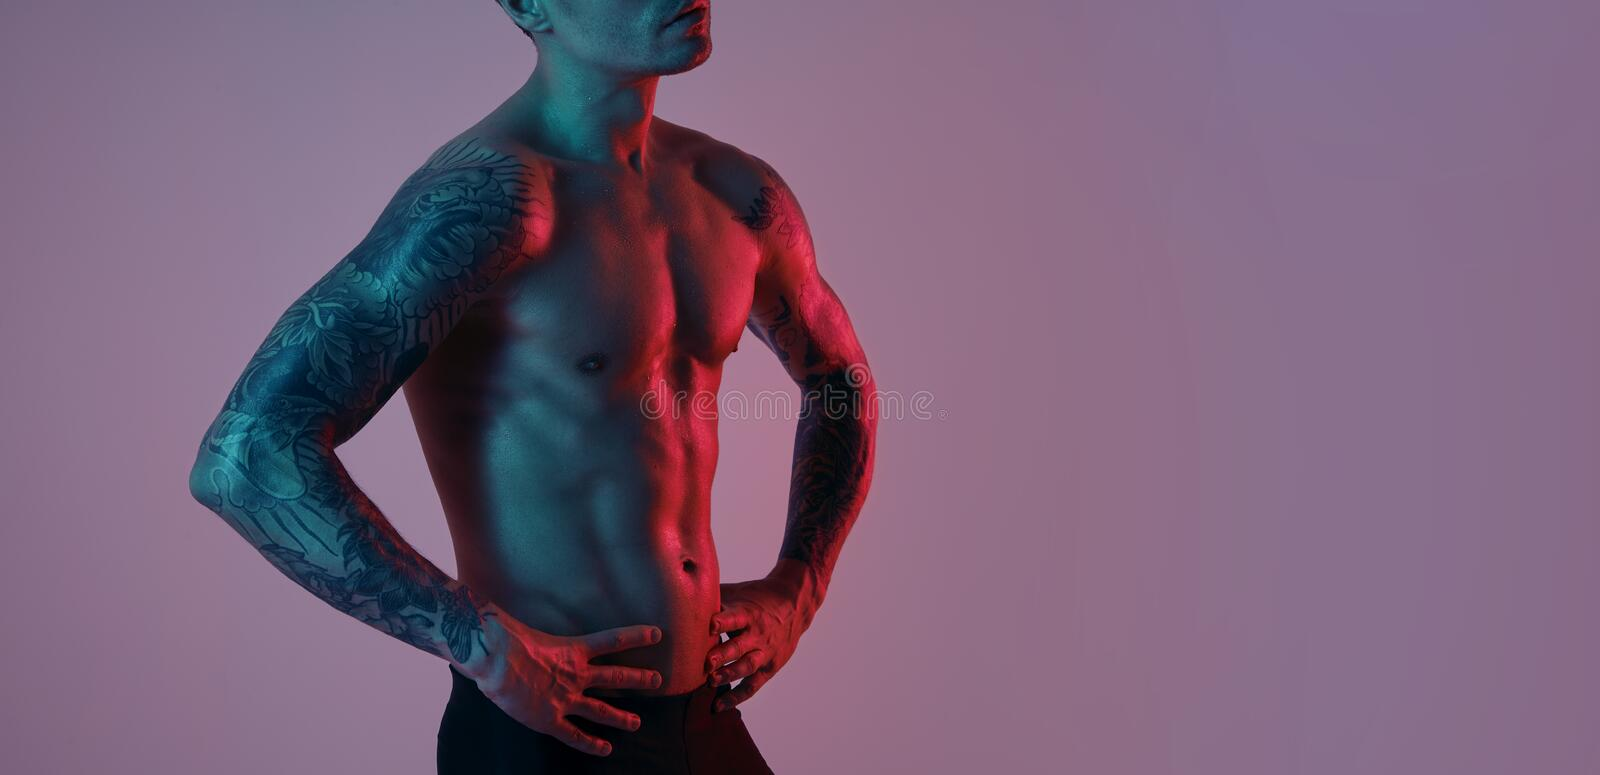 Fashion portrait of sport fit attractive man. Masculine naked torso tattooed hands. Color flash studio light.  royalty free stock photography